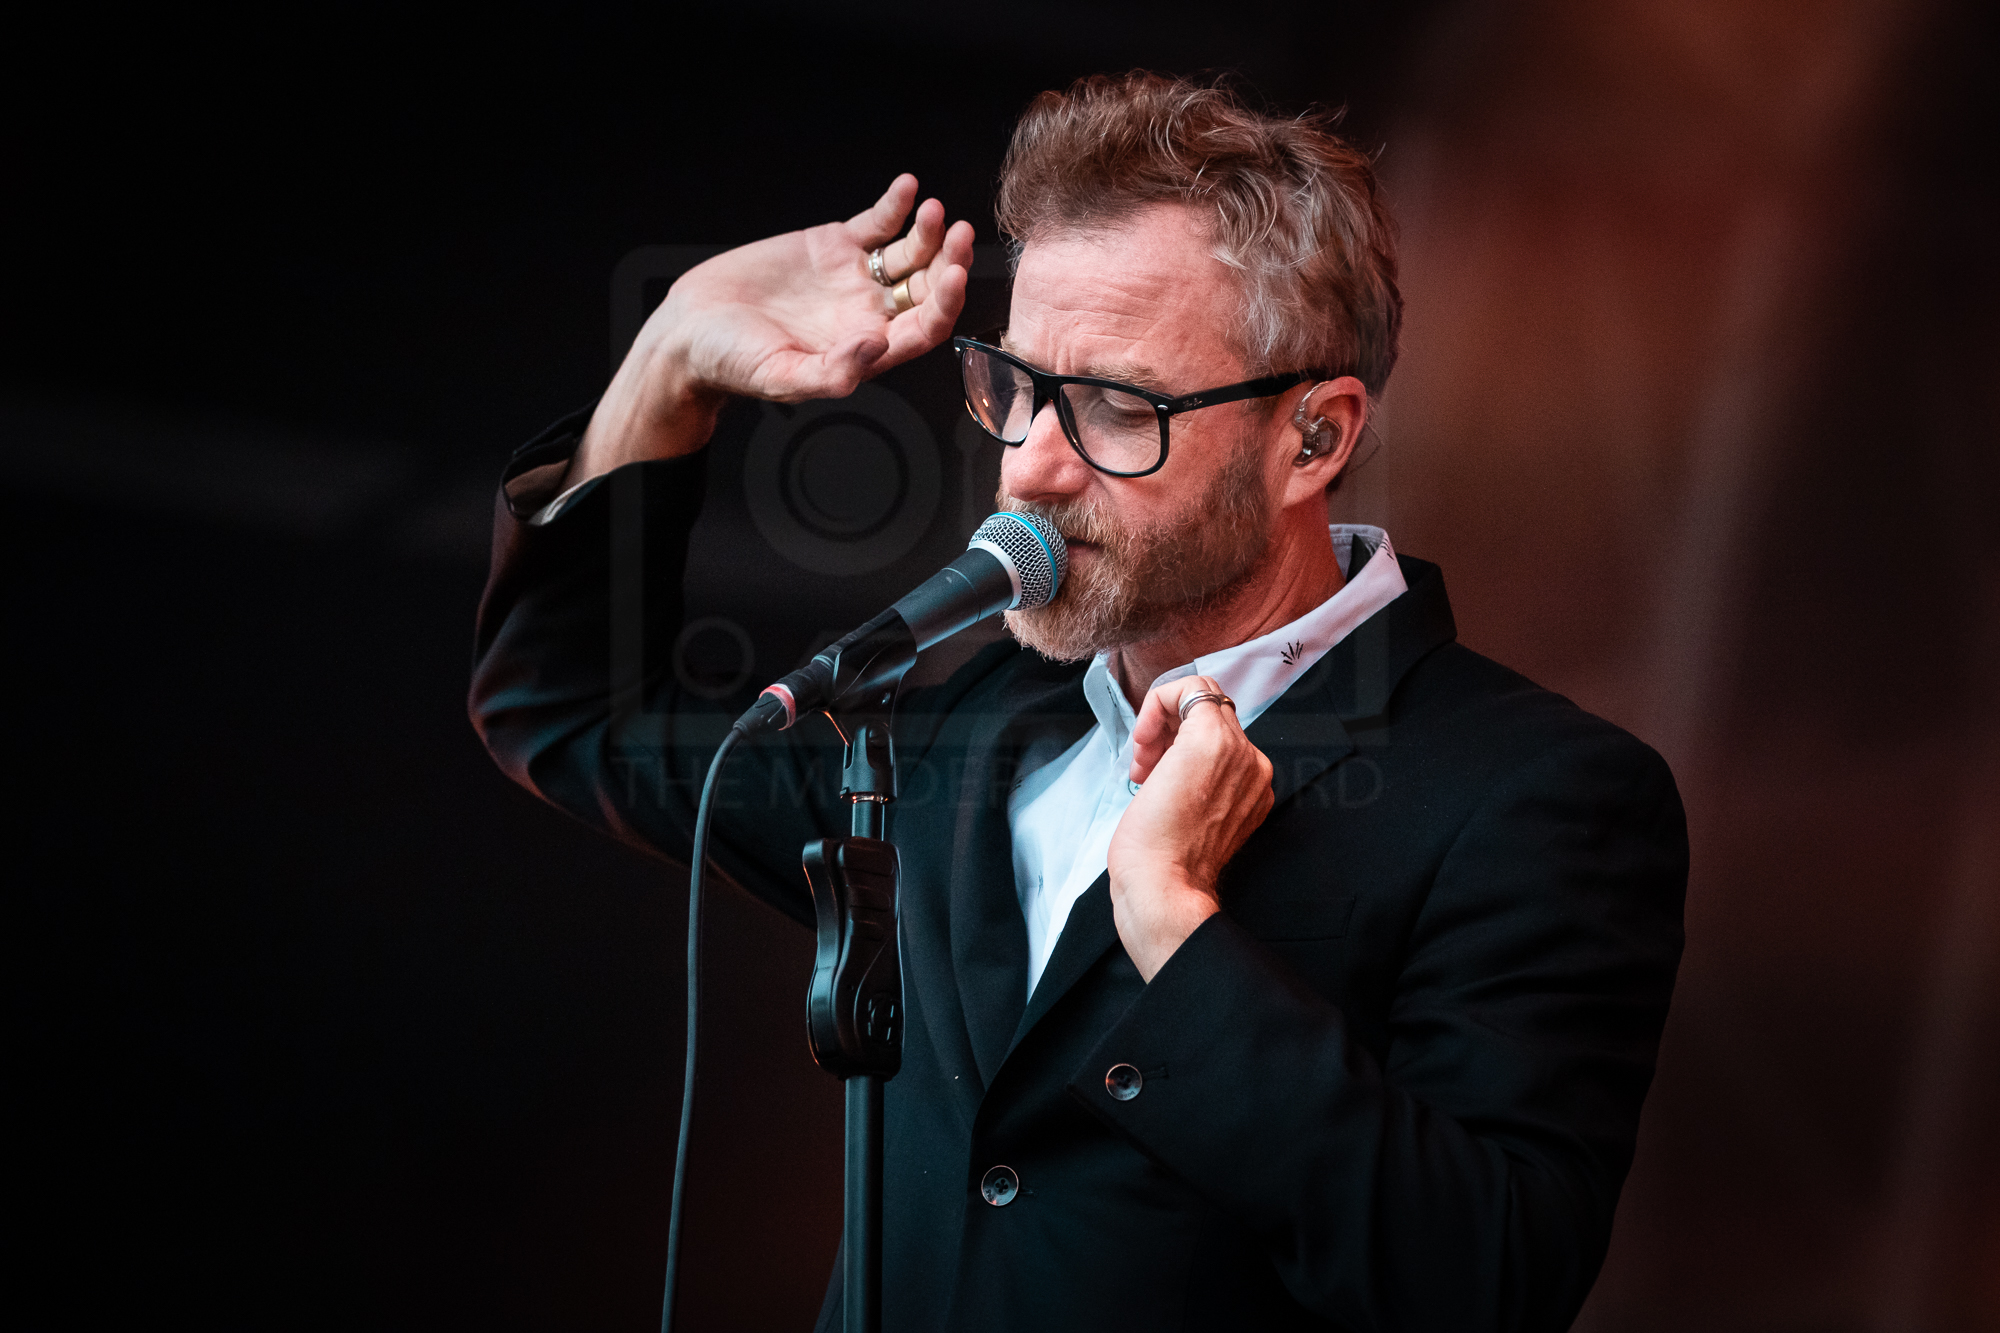 THE NATIONAL PERFORMING AT MANCHESTER'S CASTLEFIELD BOWL AS PART OF SOUNDS OF THE CITY  PICTURE BY: KENDALL WILSON